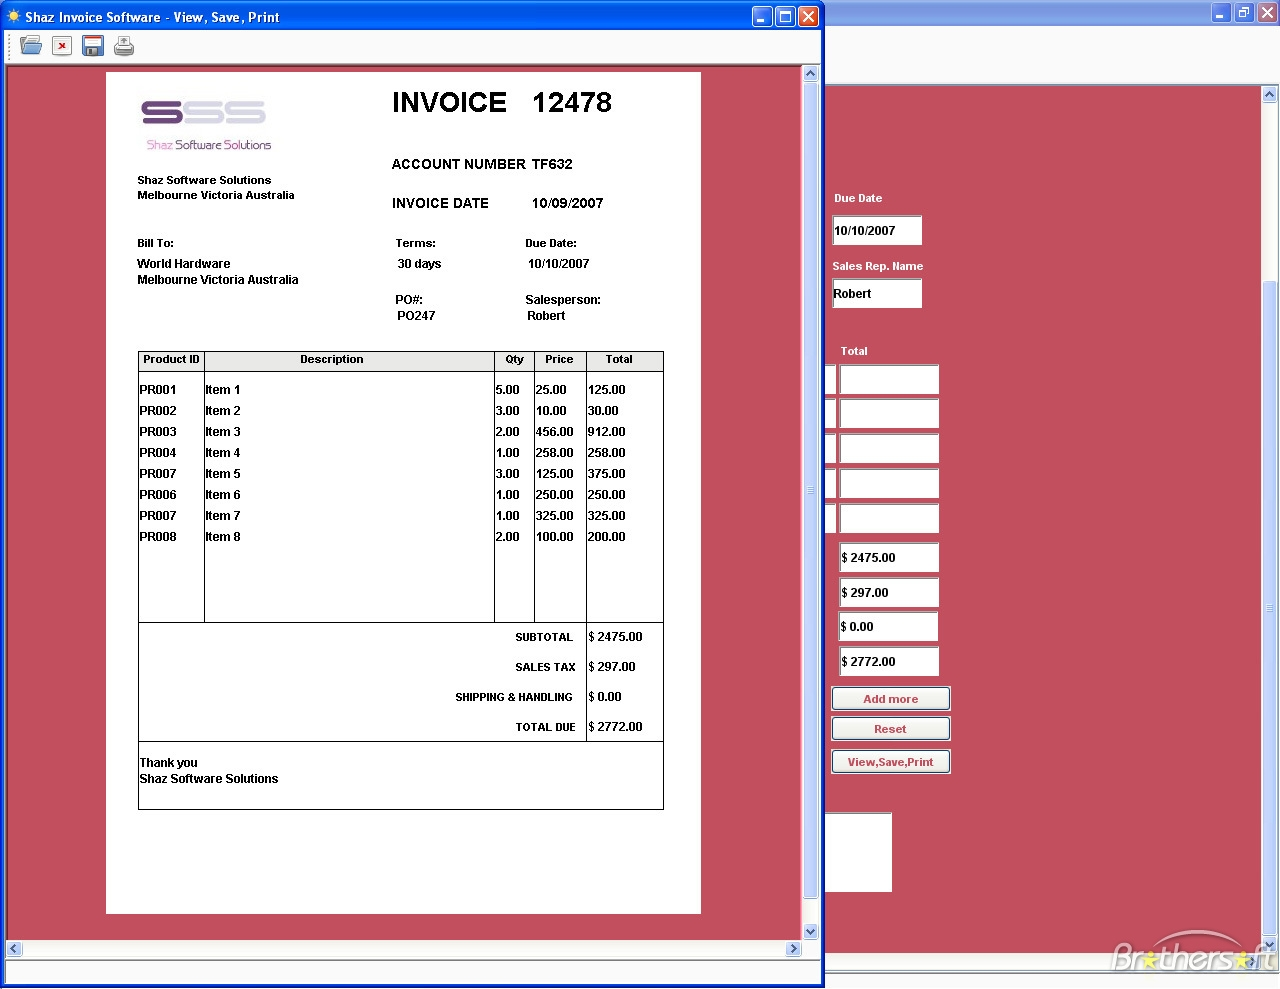 free invoice making software download free shaz invoice software shaz invoice software 100 1280 X 989